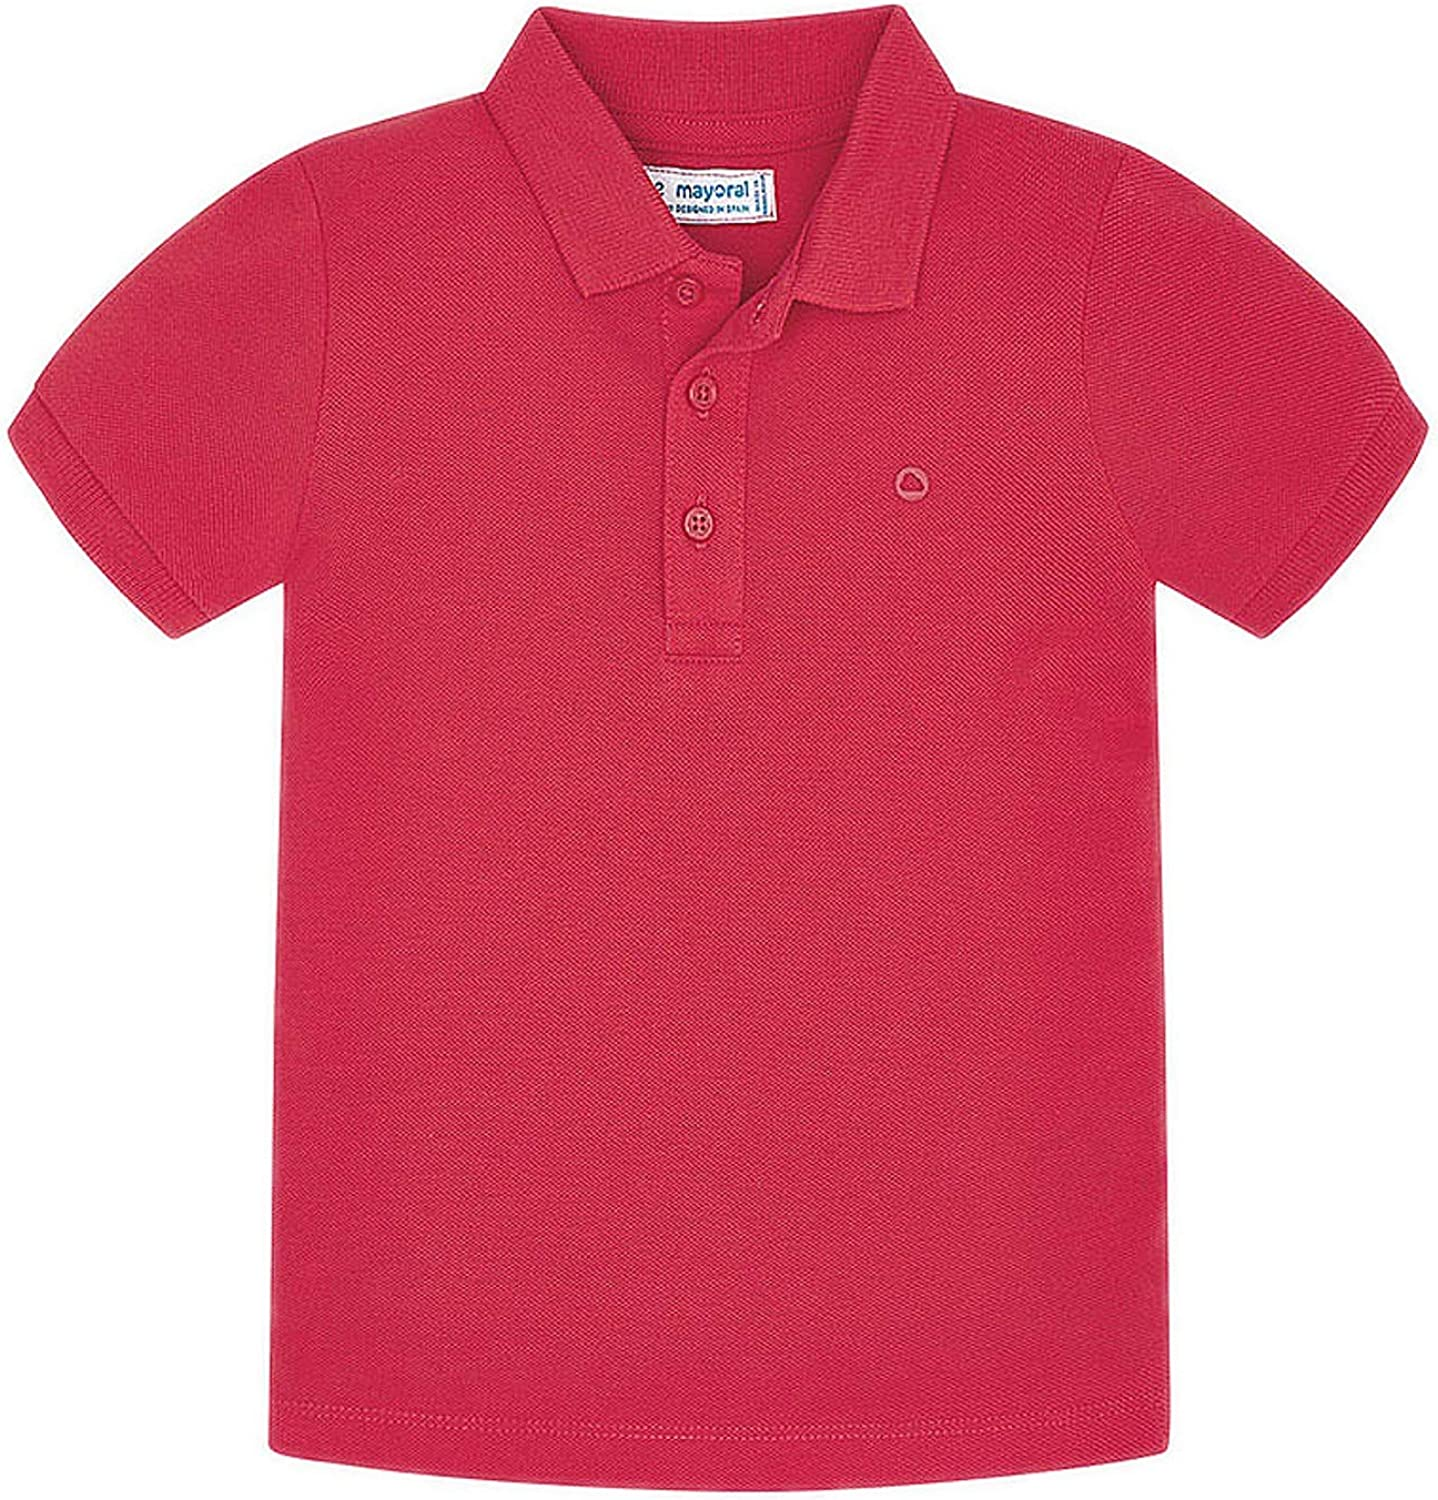 Mayoral - Basic s/s Polo for Boys - 0150, Hibiscus